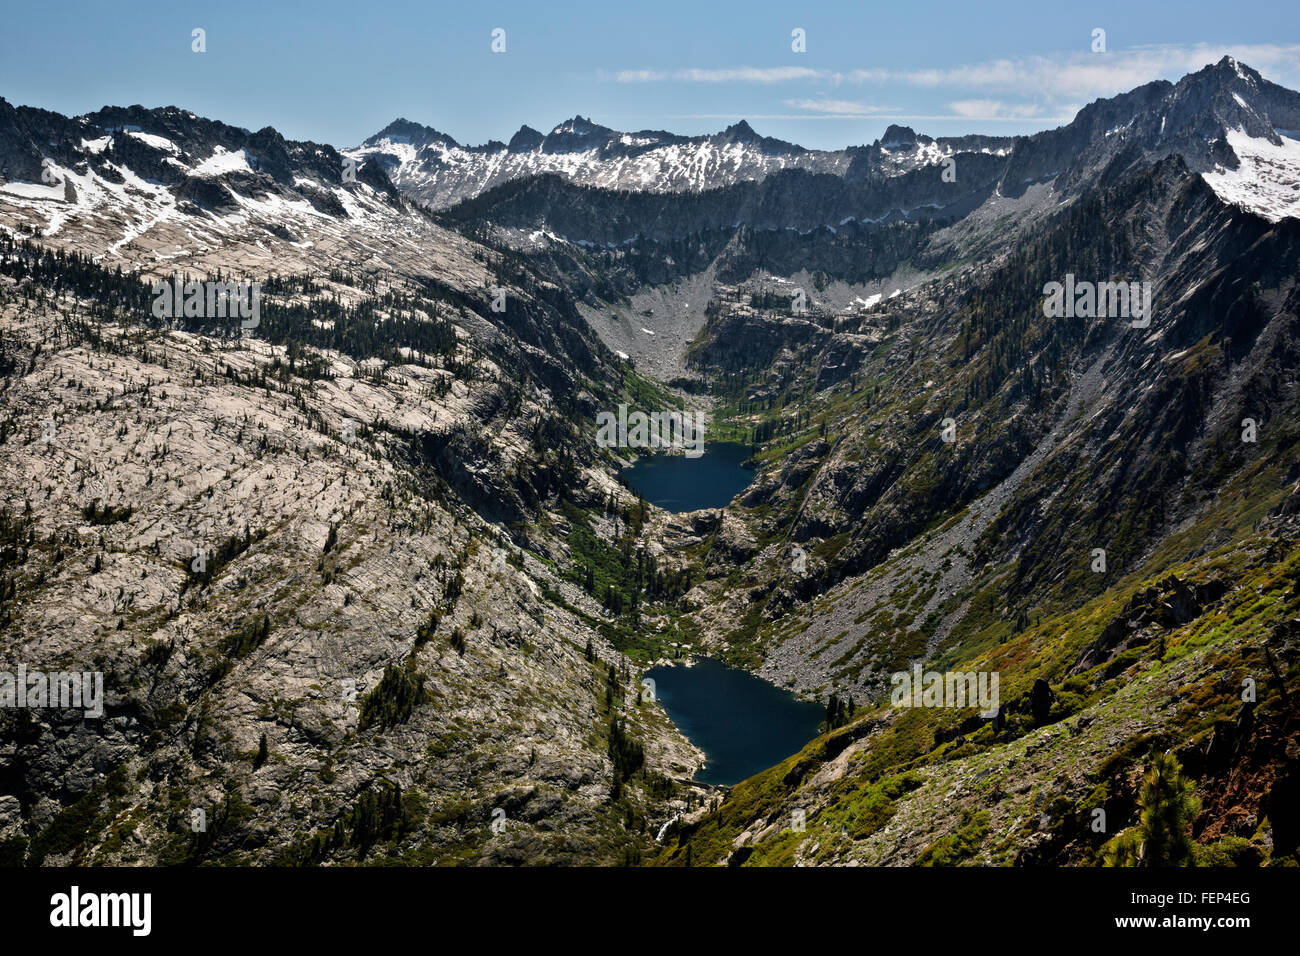 CALIFORNIA - Emerald and Sapphire Lakes in the Stuart Fork Creek Valley from the summit of the Caribou Scramble - Stock Image